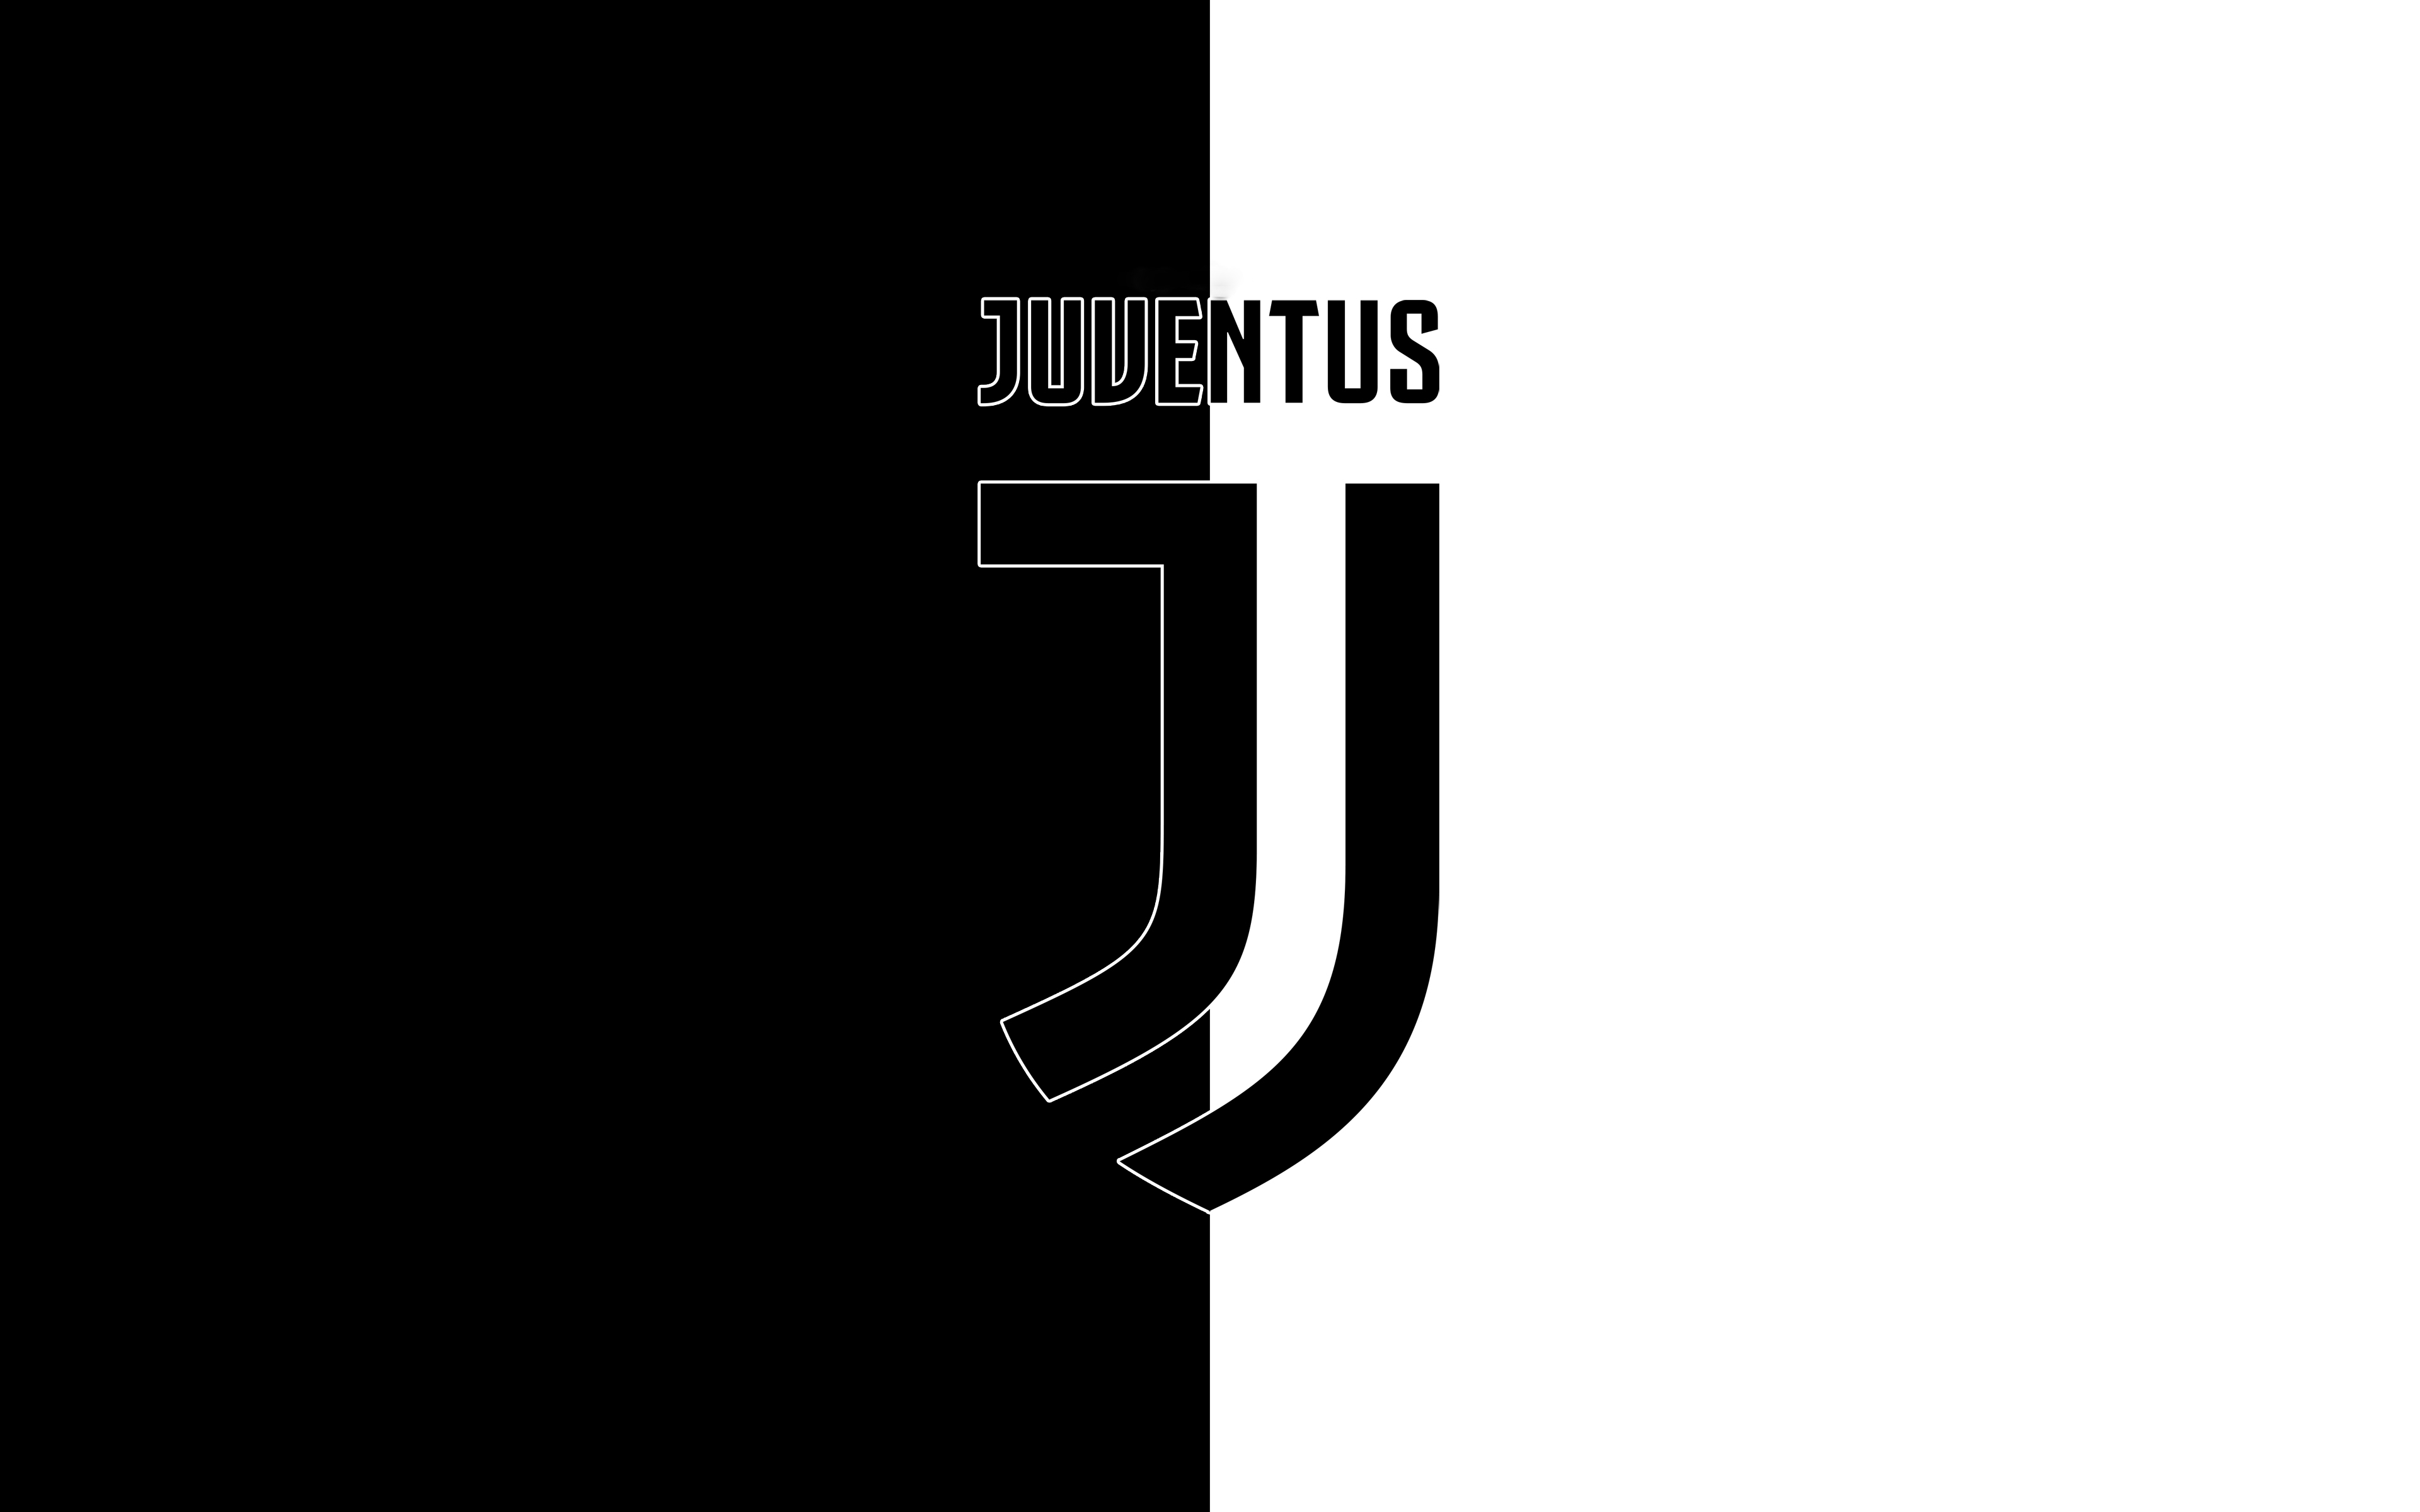 juventus new logo wallpapers posted by sarah cunningham logo wallpapers posted by sarah cunningham